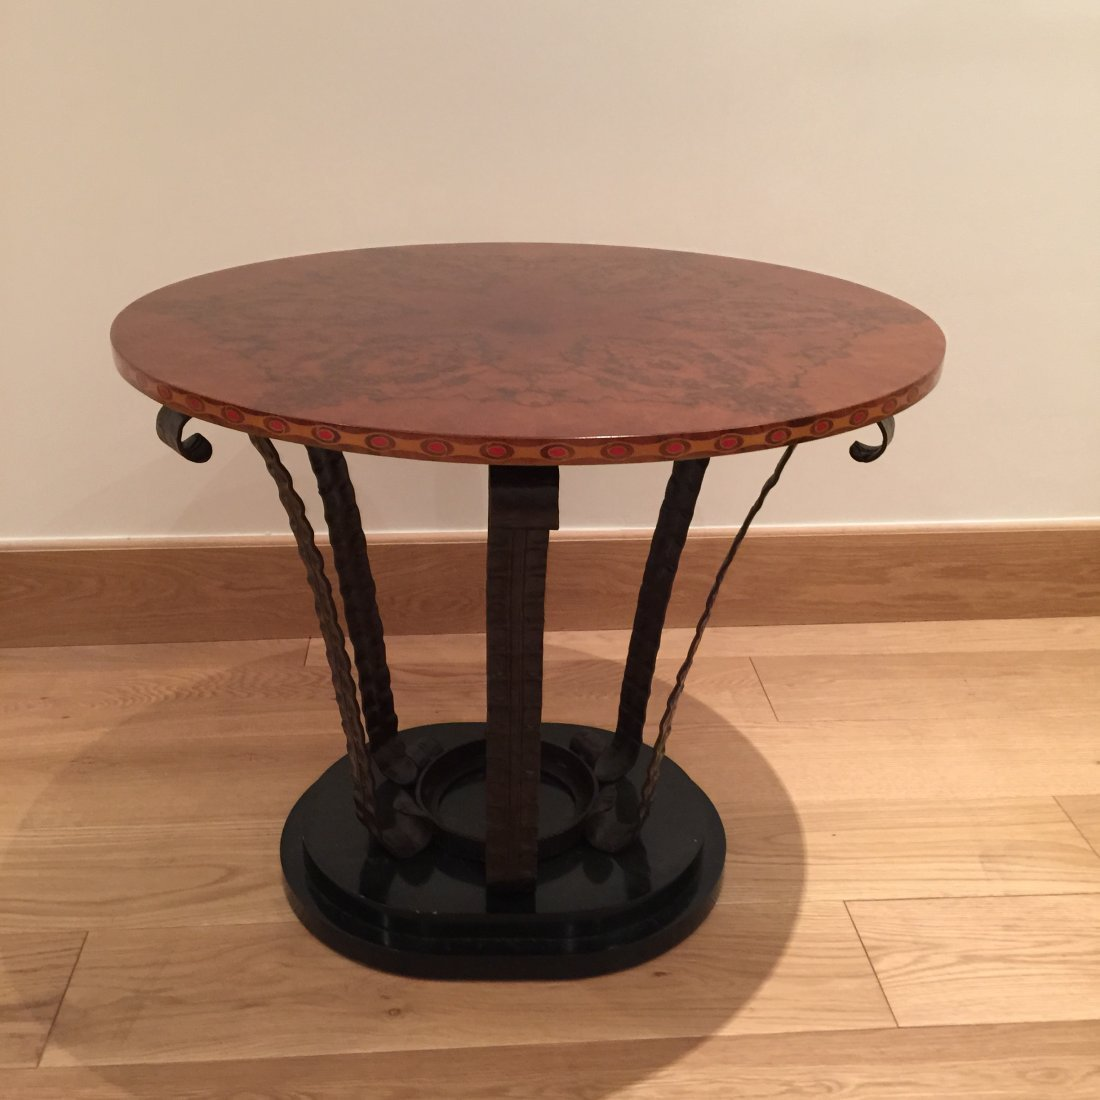 1 Wrought iron pedestal table FFGUER  NR